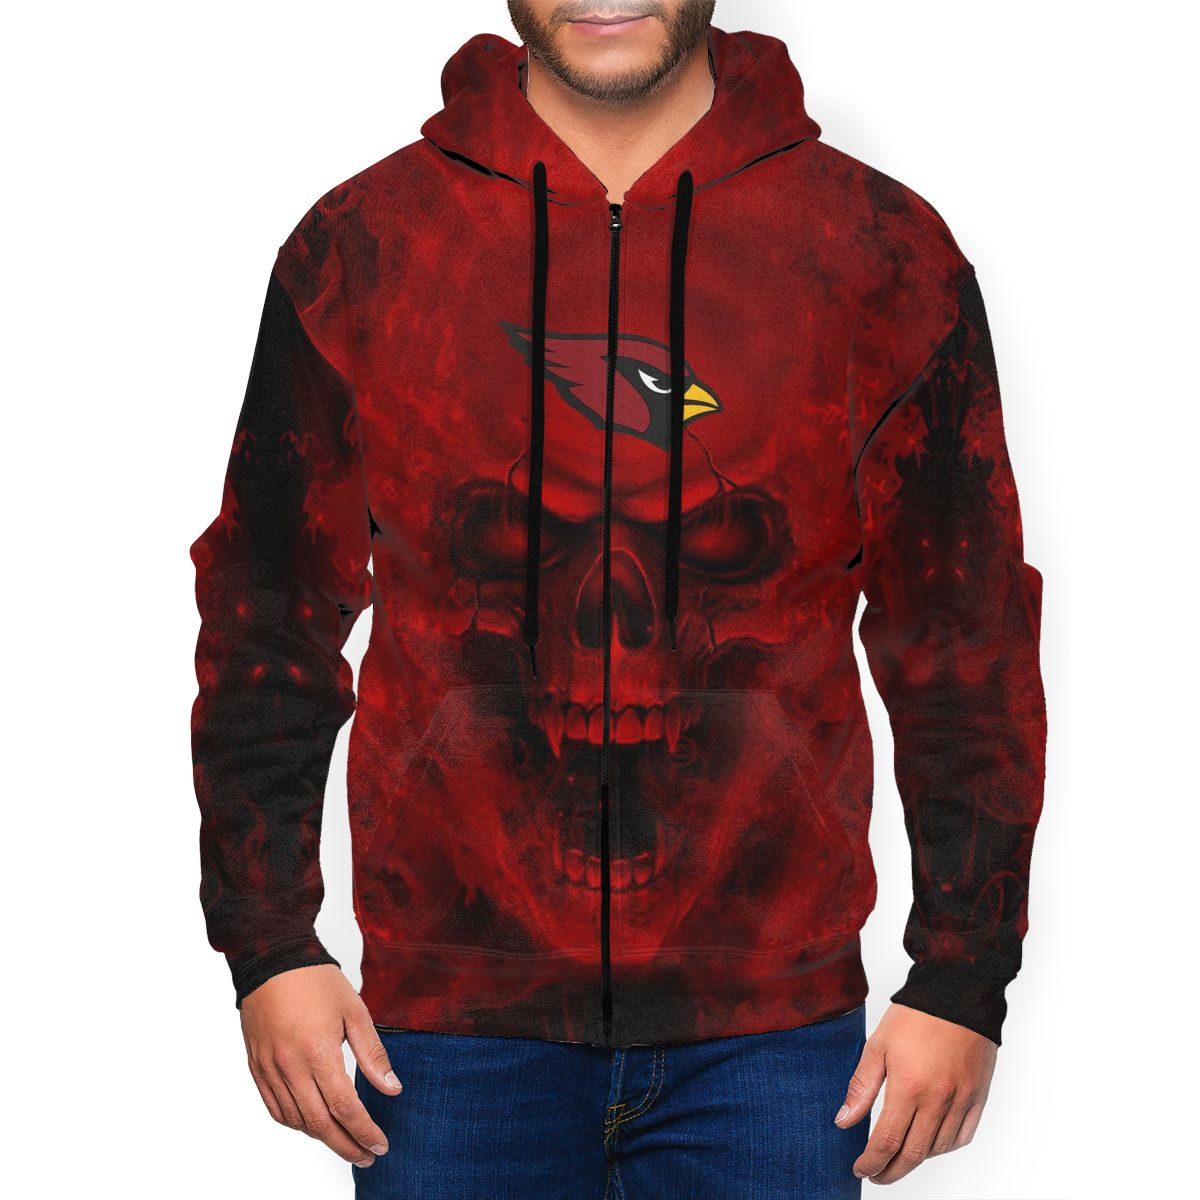 3D Skull Cardinals Men's Zip Hooded Sweatshirt